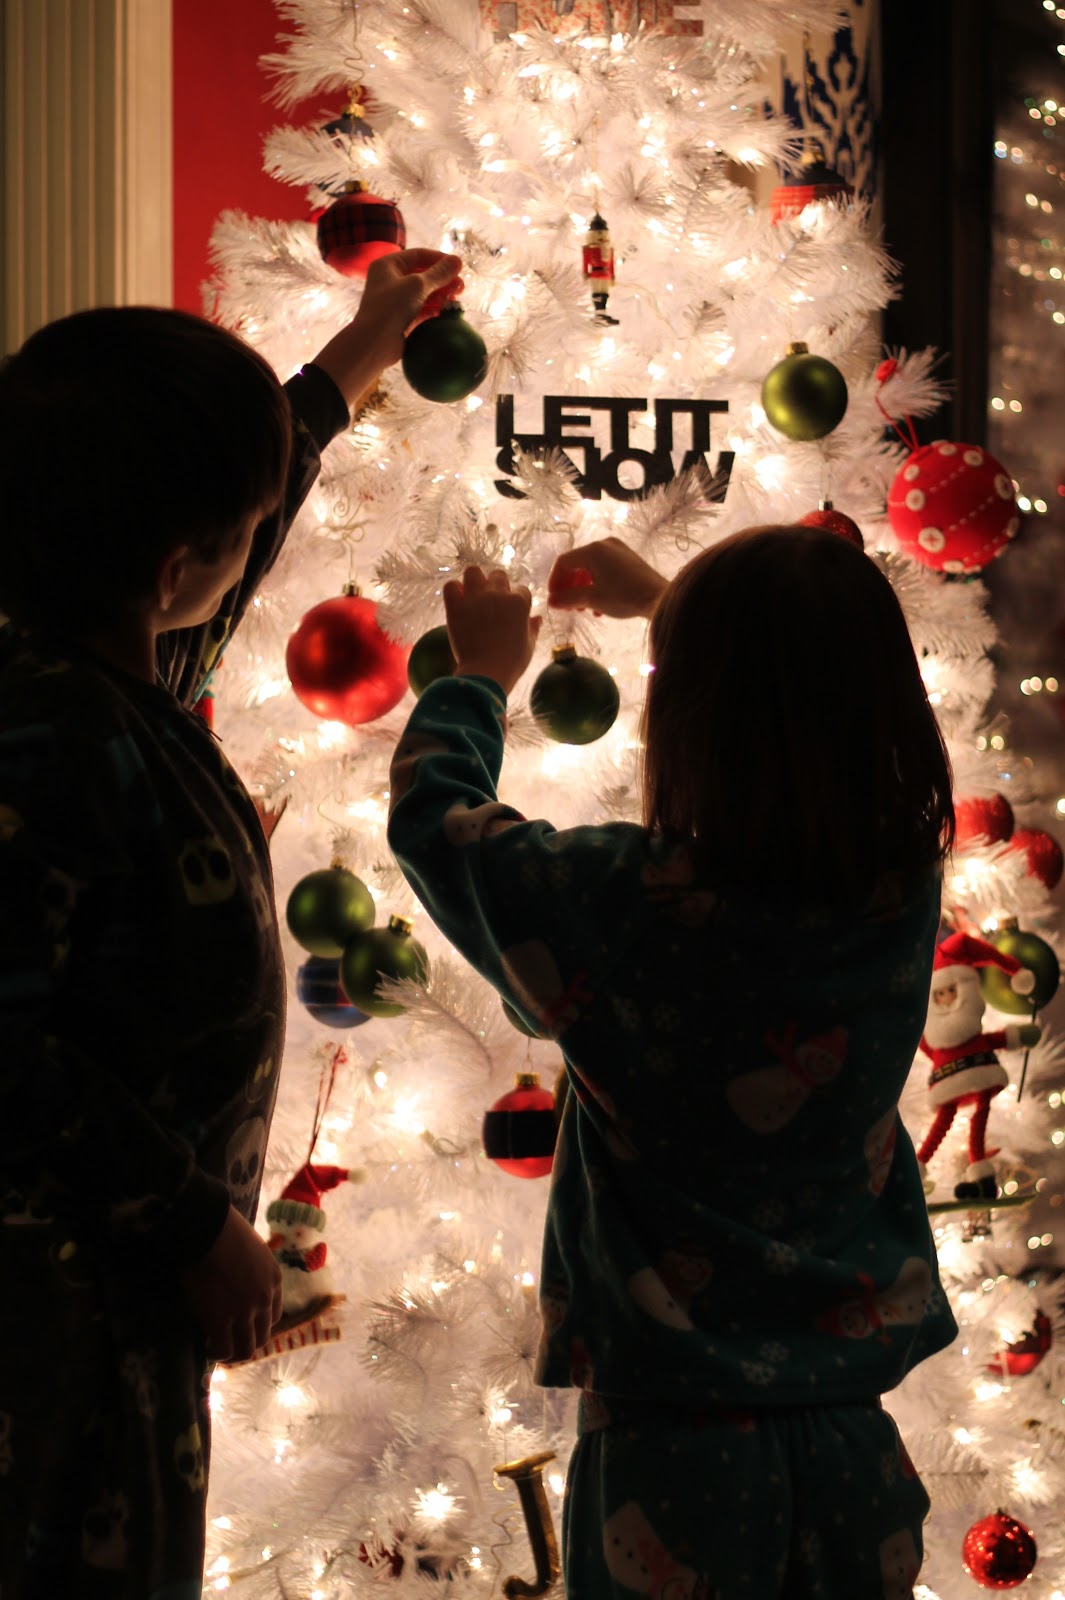 then after they went to bed i did a little not much rearranging i mean one branch doesnt really need 10 ornaments on it does it - When Did White Christmas Come Out